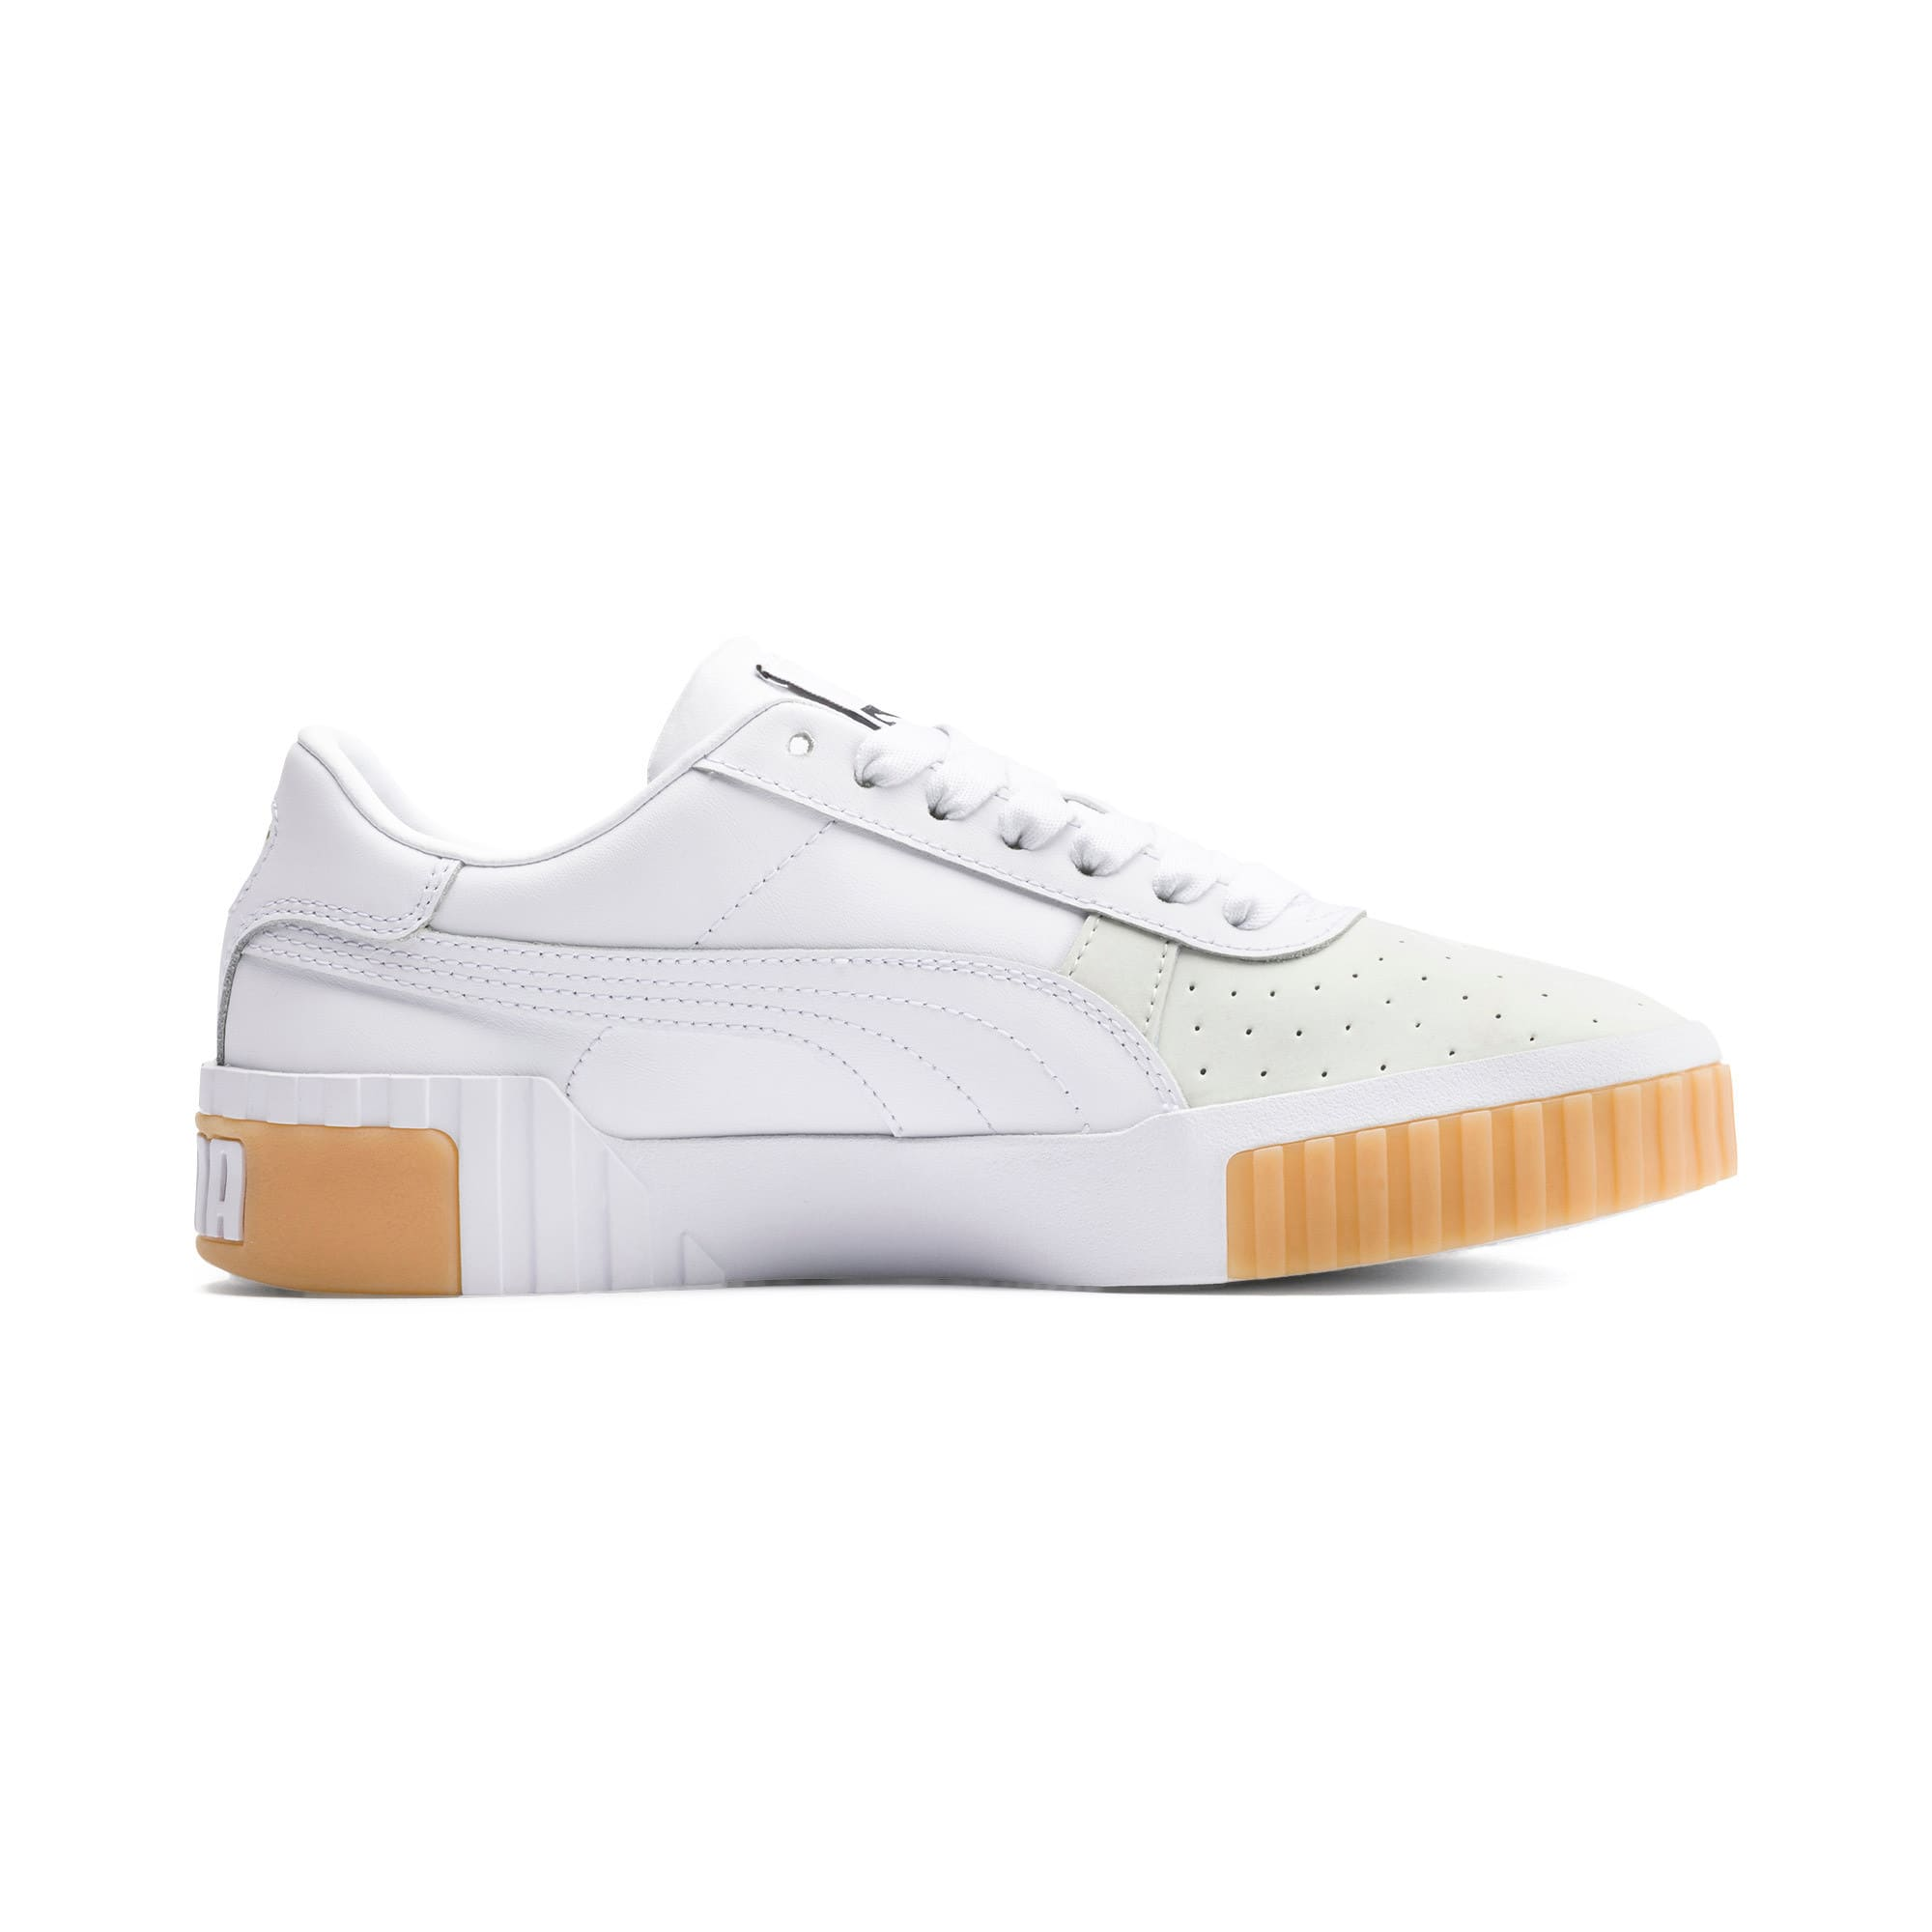 Thumbnail 5 of Zapatillas de mujer Cali Exotic, Puma White-Puma White, medium